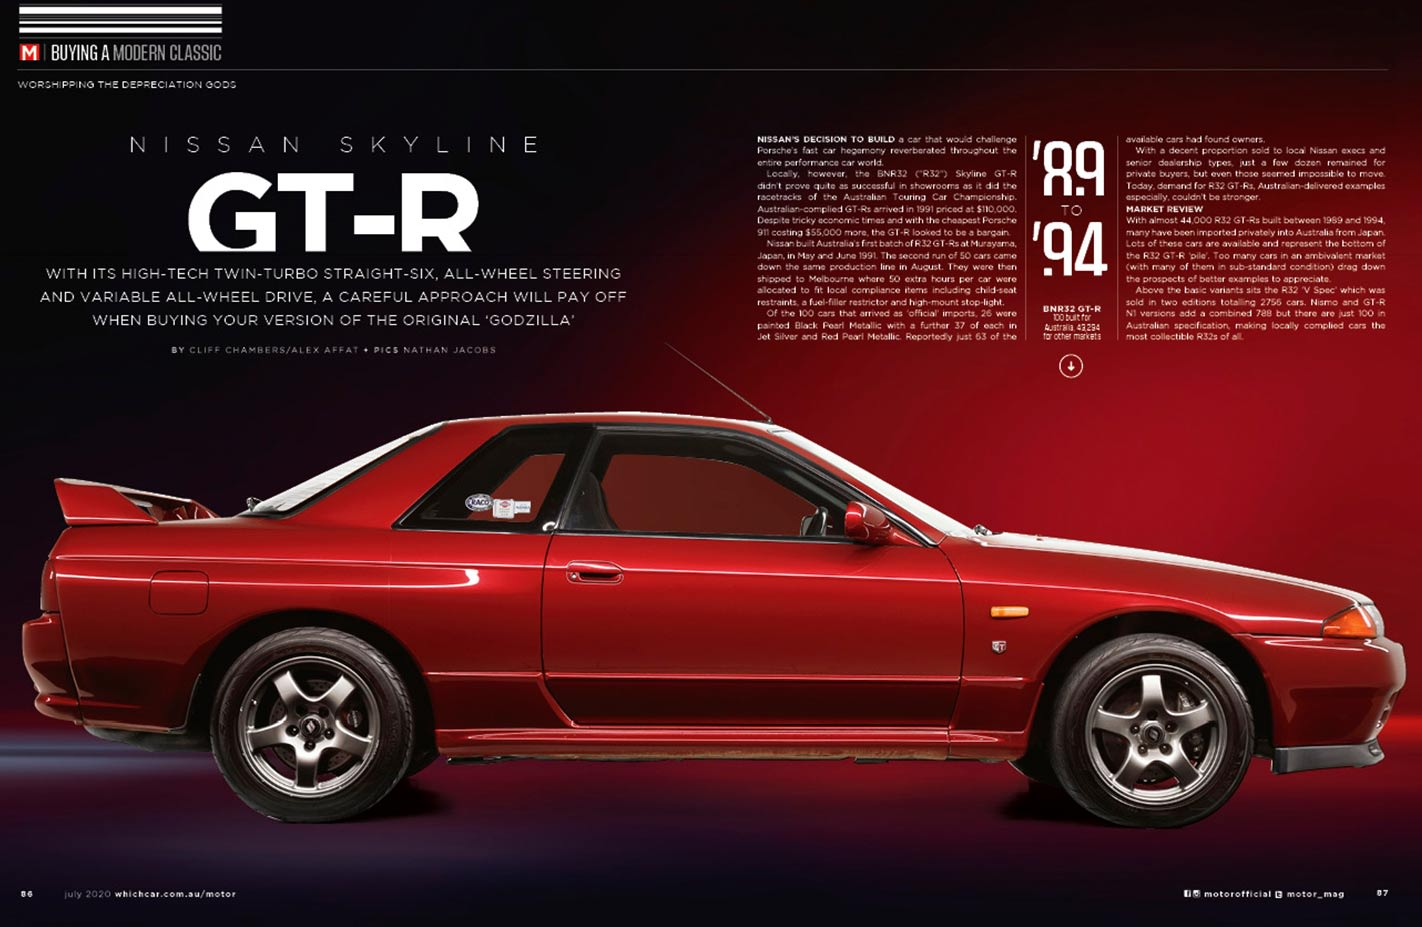 Nissan R32 GT-R buyers guide